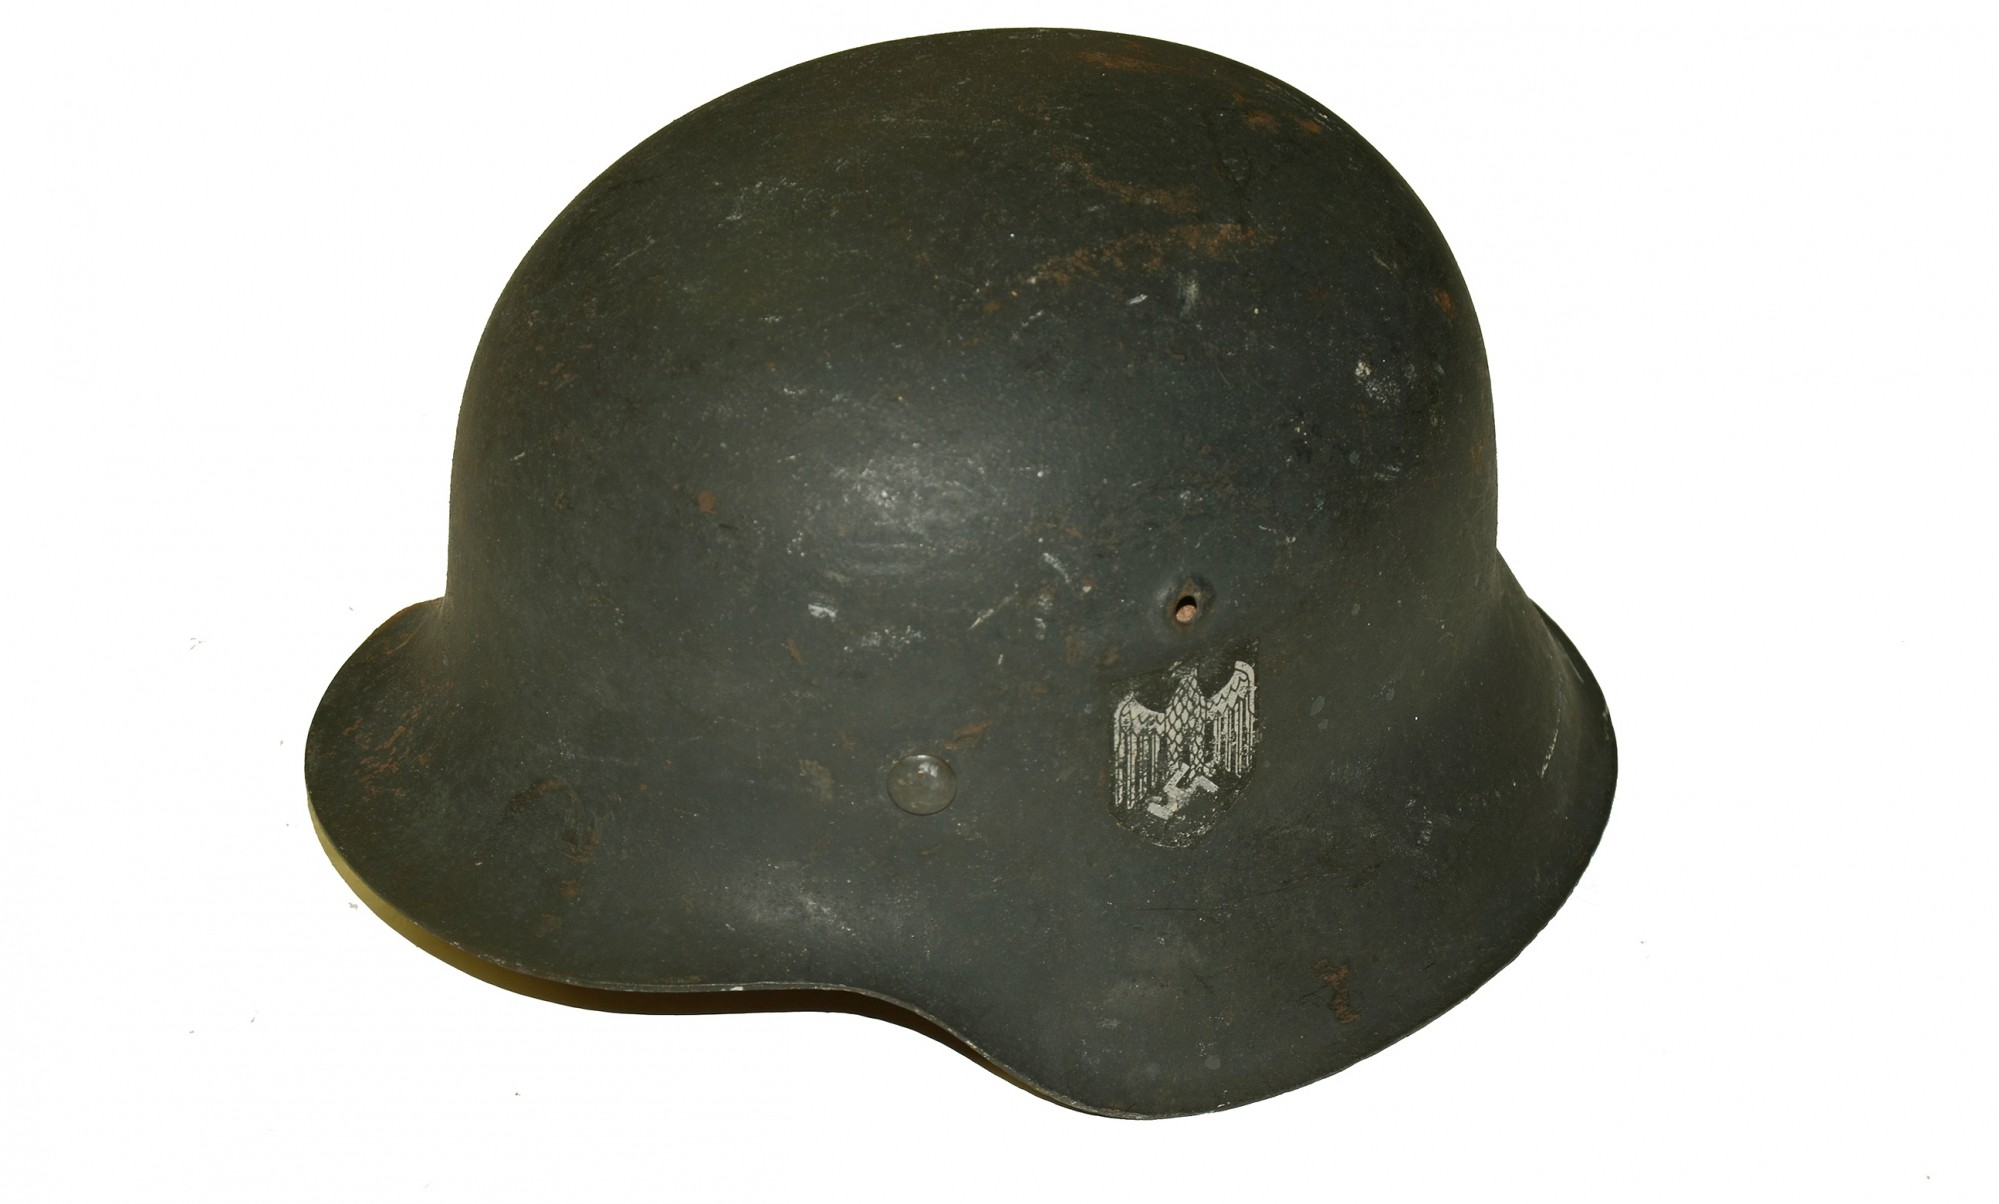 MODEL 1942 SINGLE DECAL GERMAN ARMY HELMET